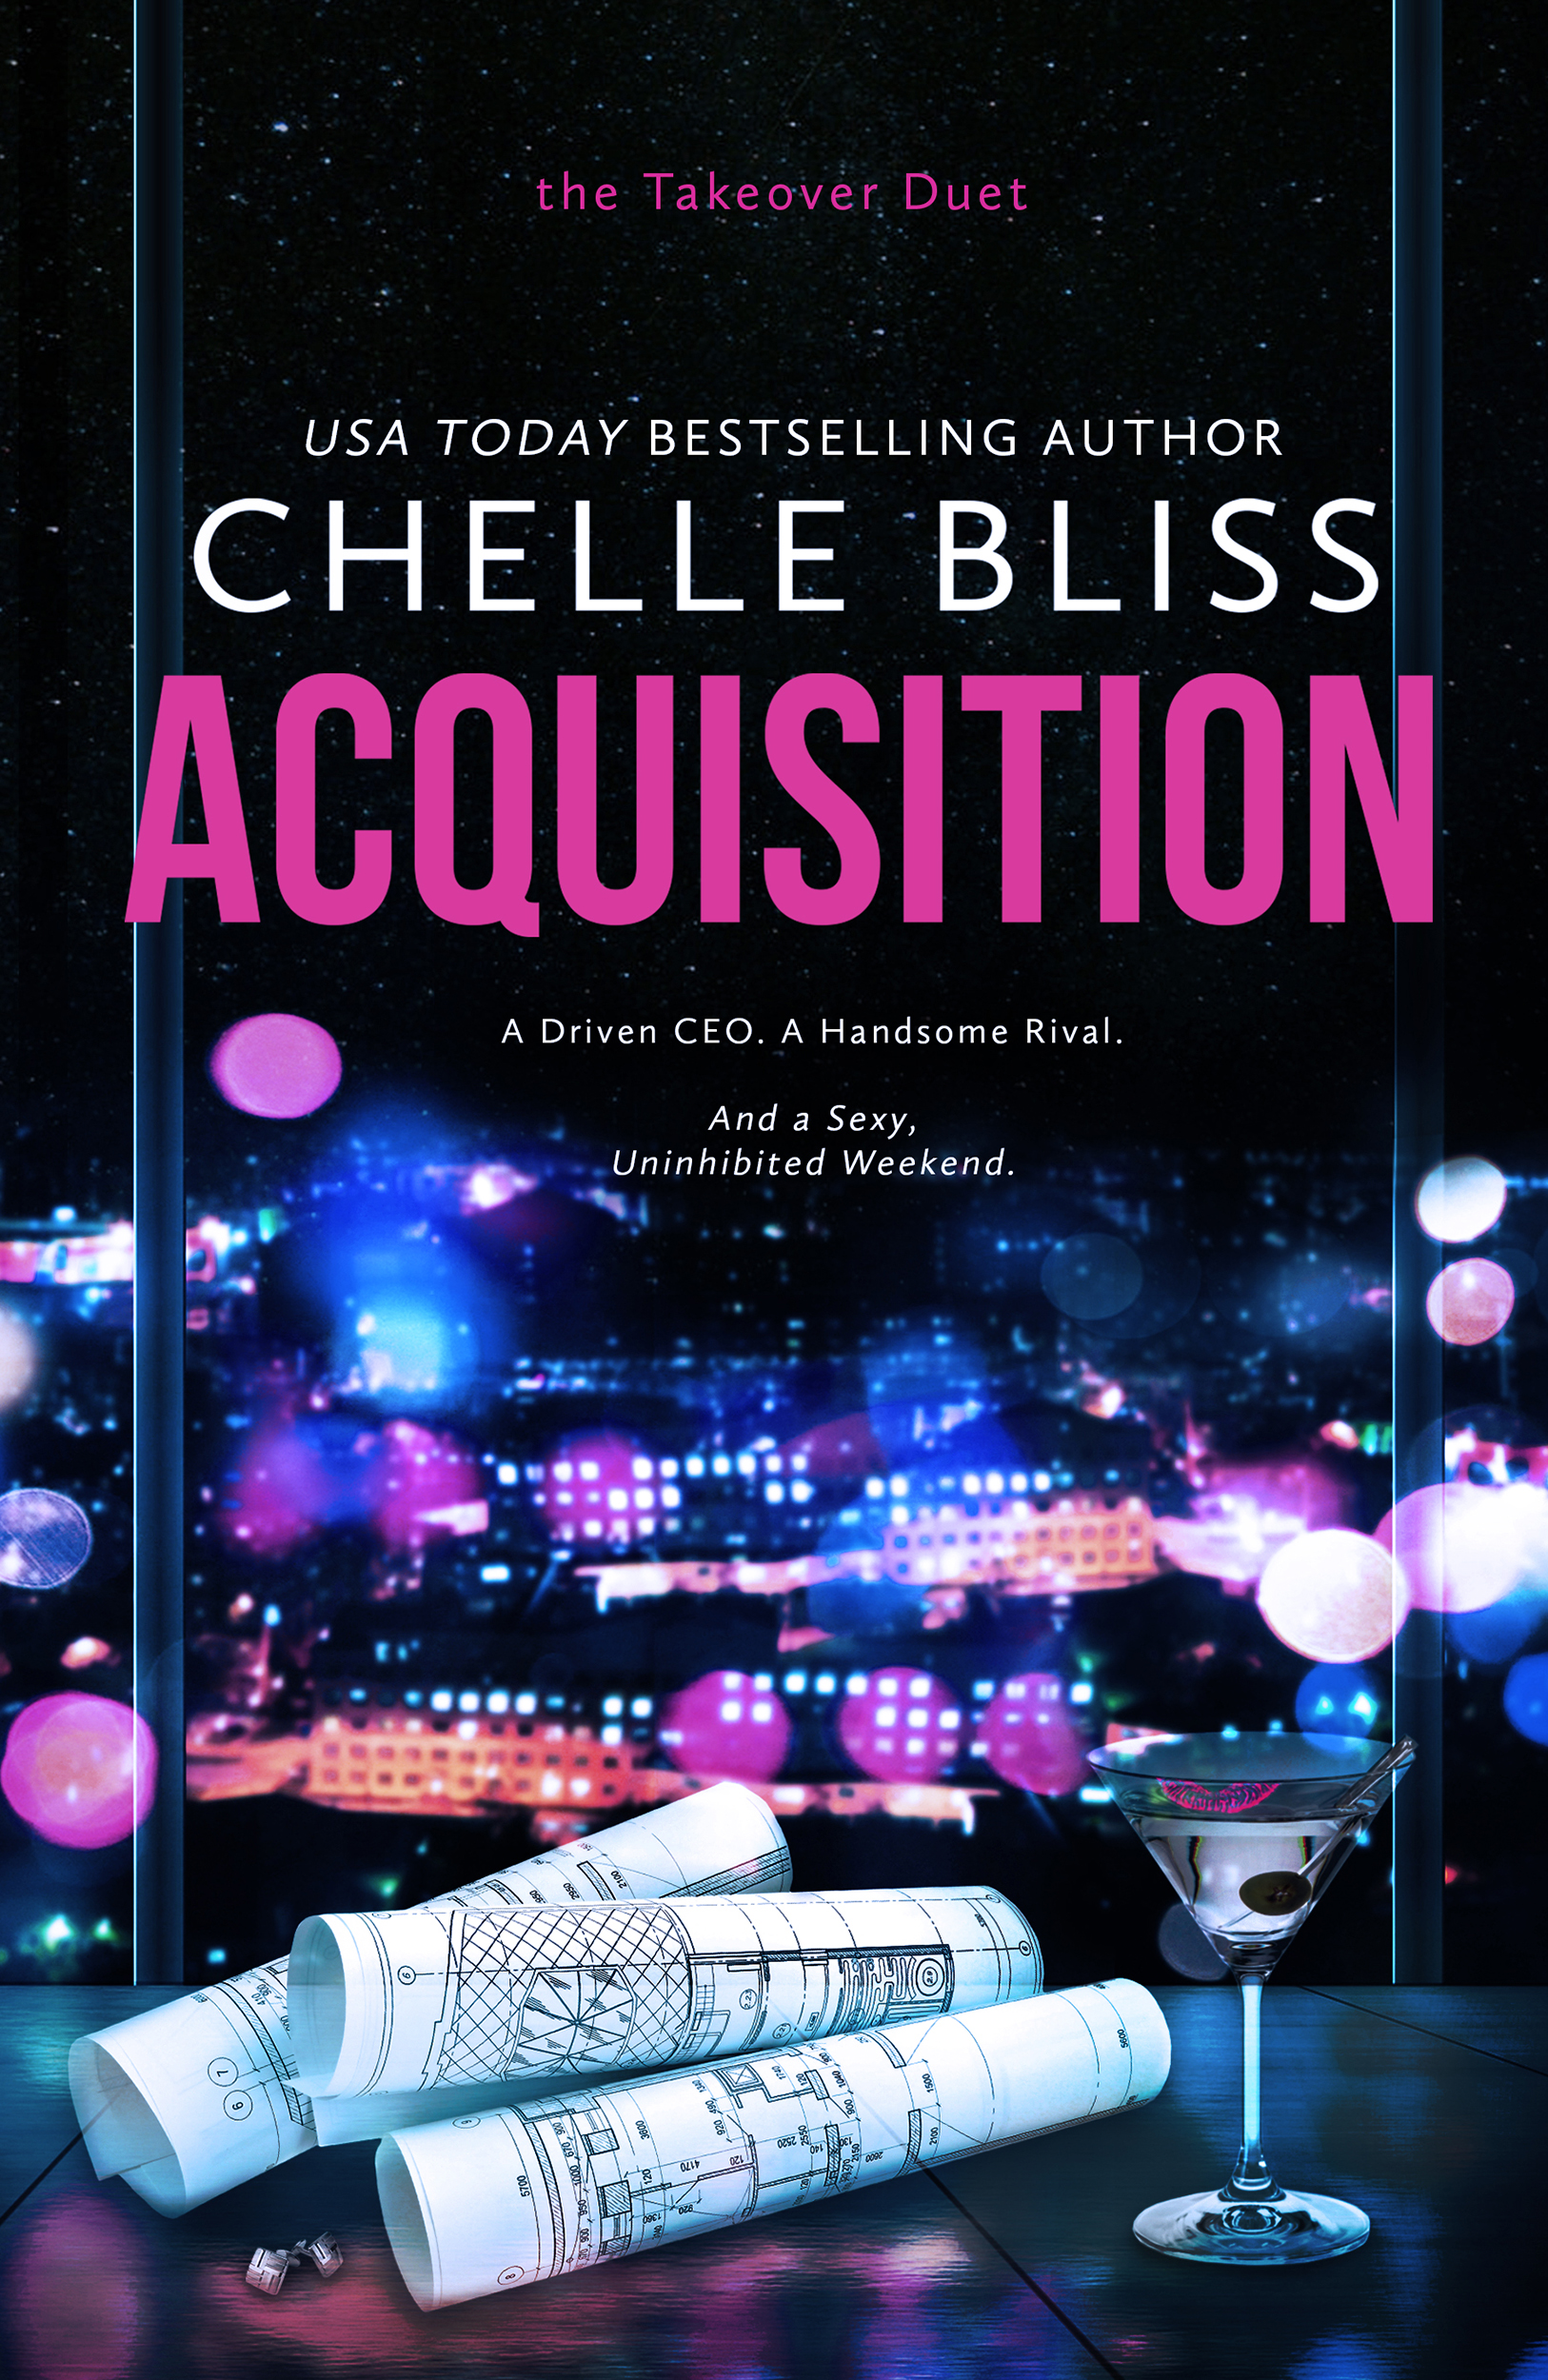 REVIEW: Acquisition by Chelle Bliss